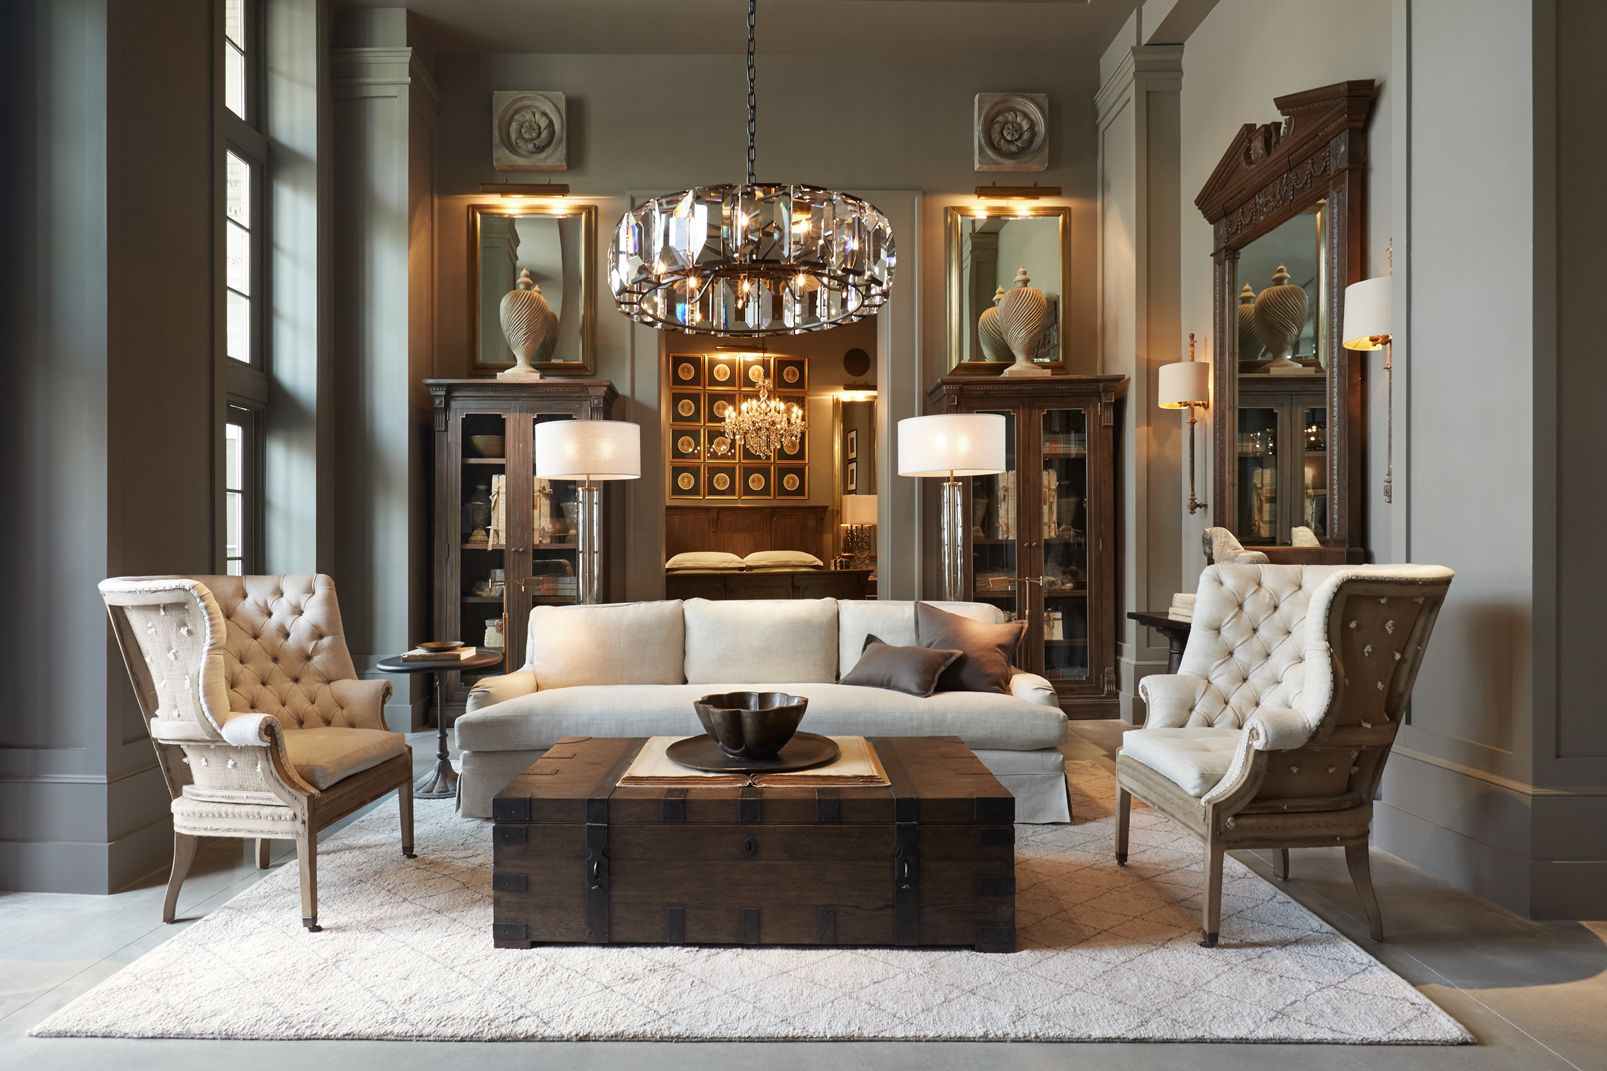 Restoration Hardware Dining Rooms The 5 Most Expensive Furniture Brands In The World